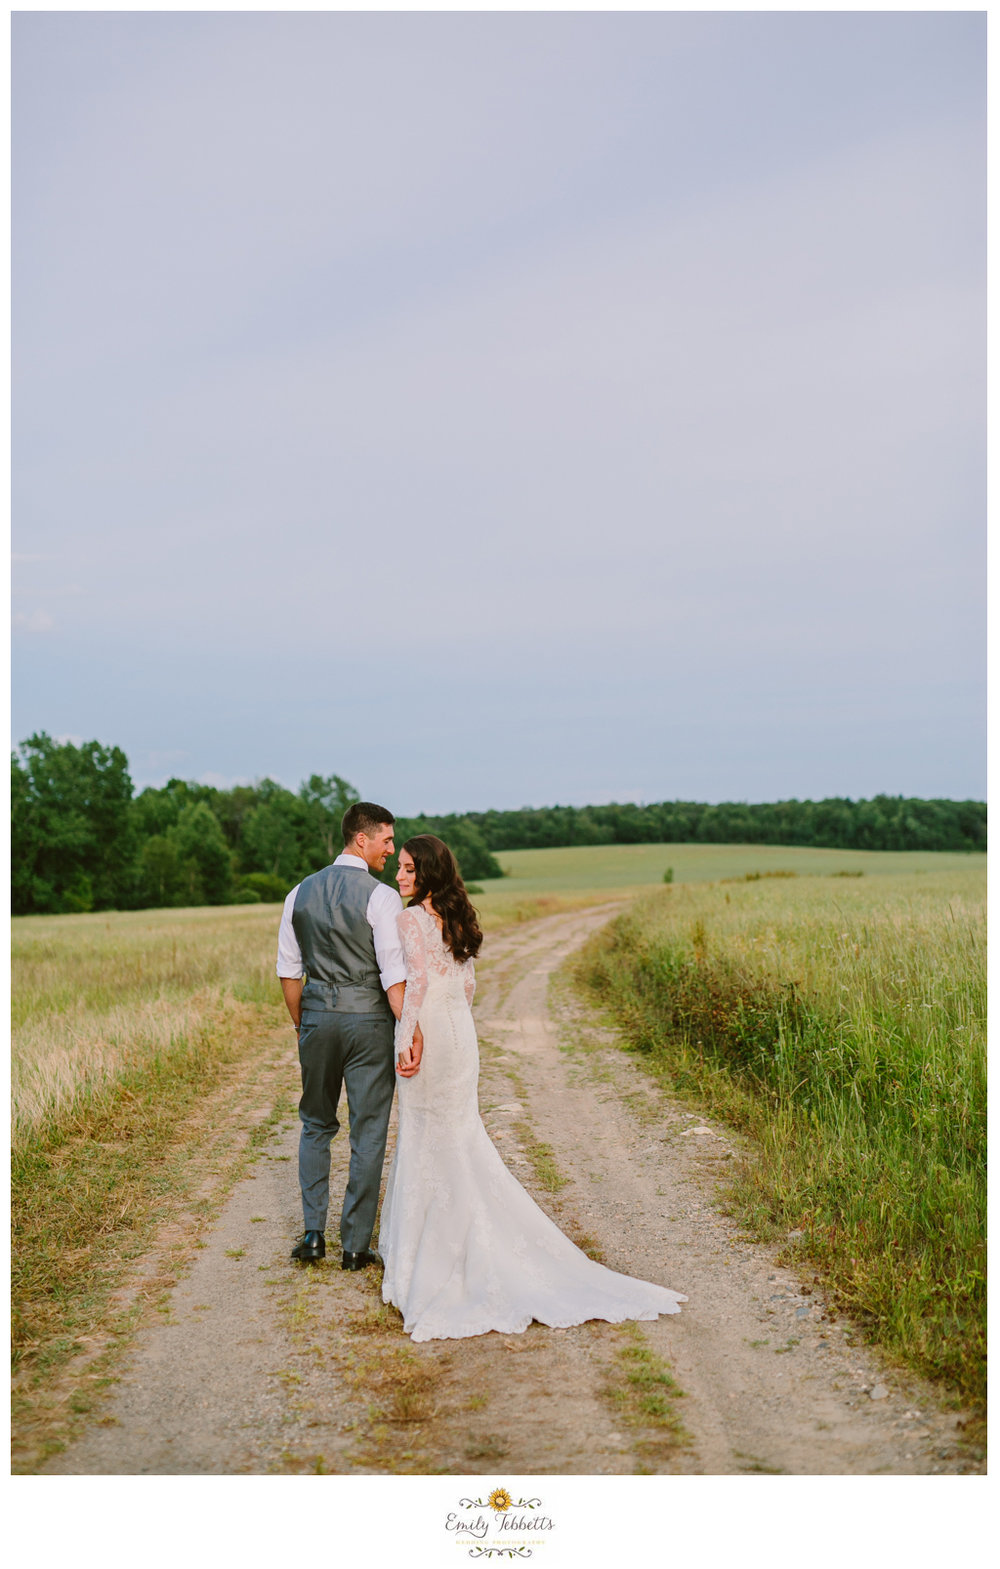 Emily Tebbetts Photography - Jackie and Ben Worthington Inn Four Corners Worthington MA Western Massachusetts Wedding Barn wedding rustic glamorous wedding bride soft waves lace wallpaper field bookcase-10.jpg